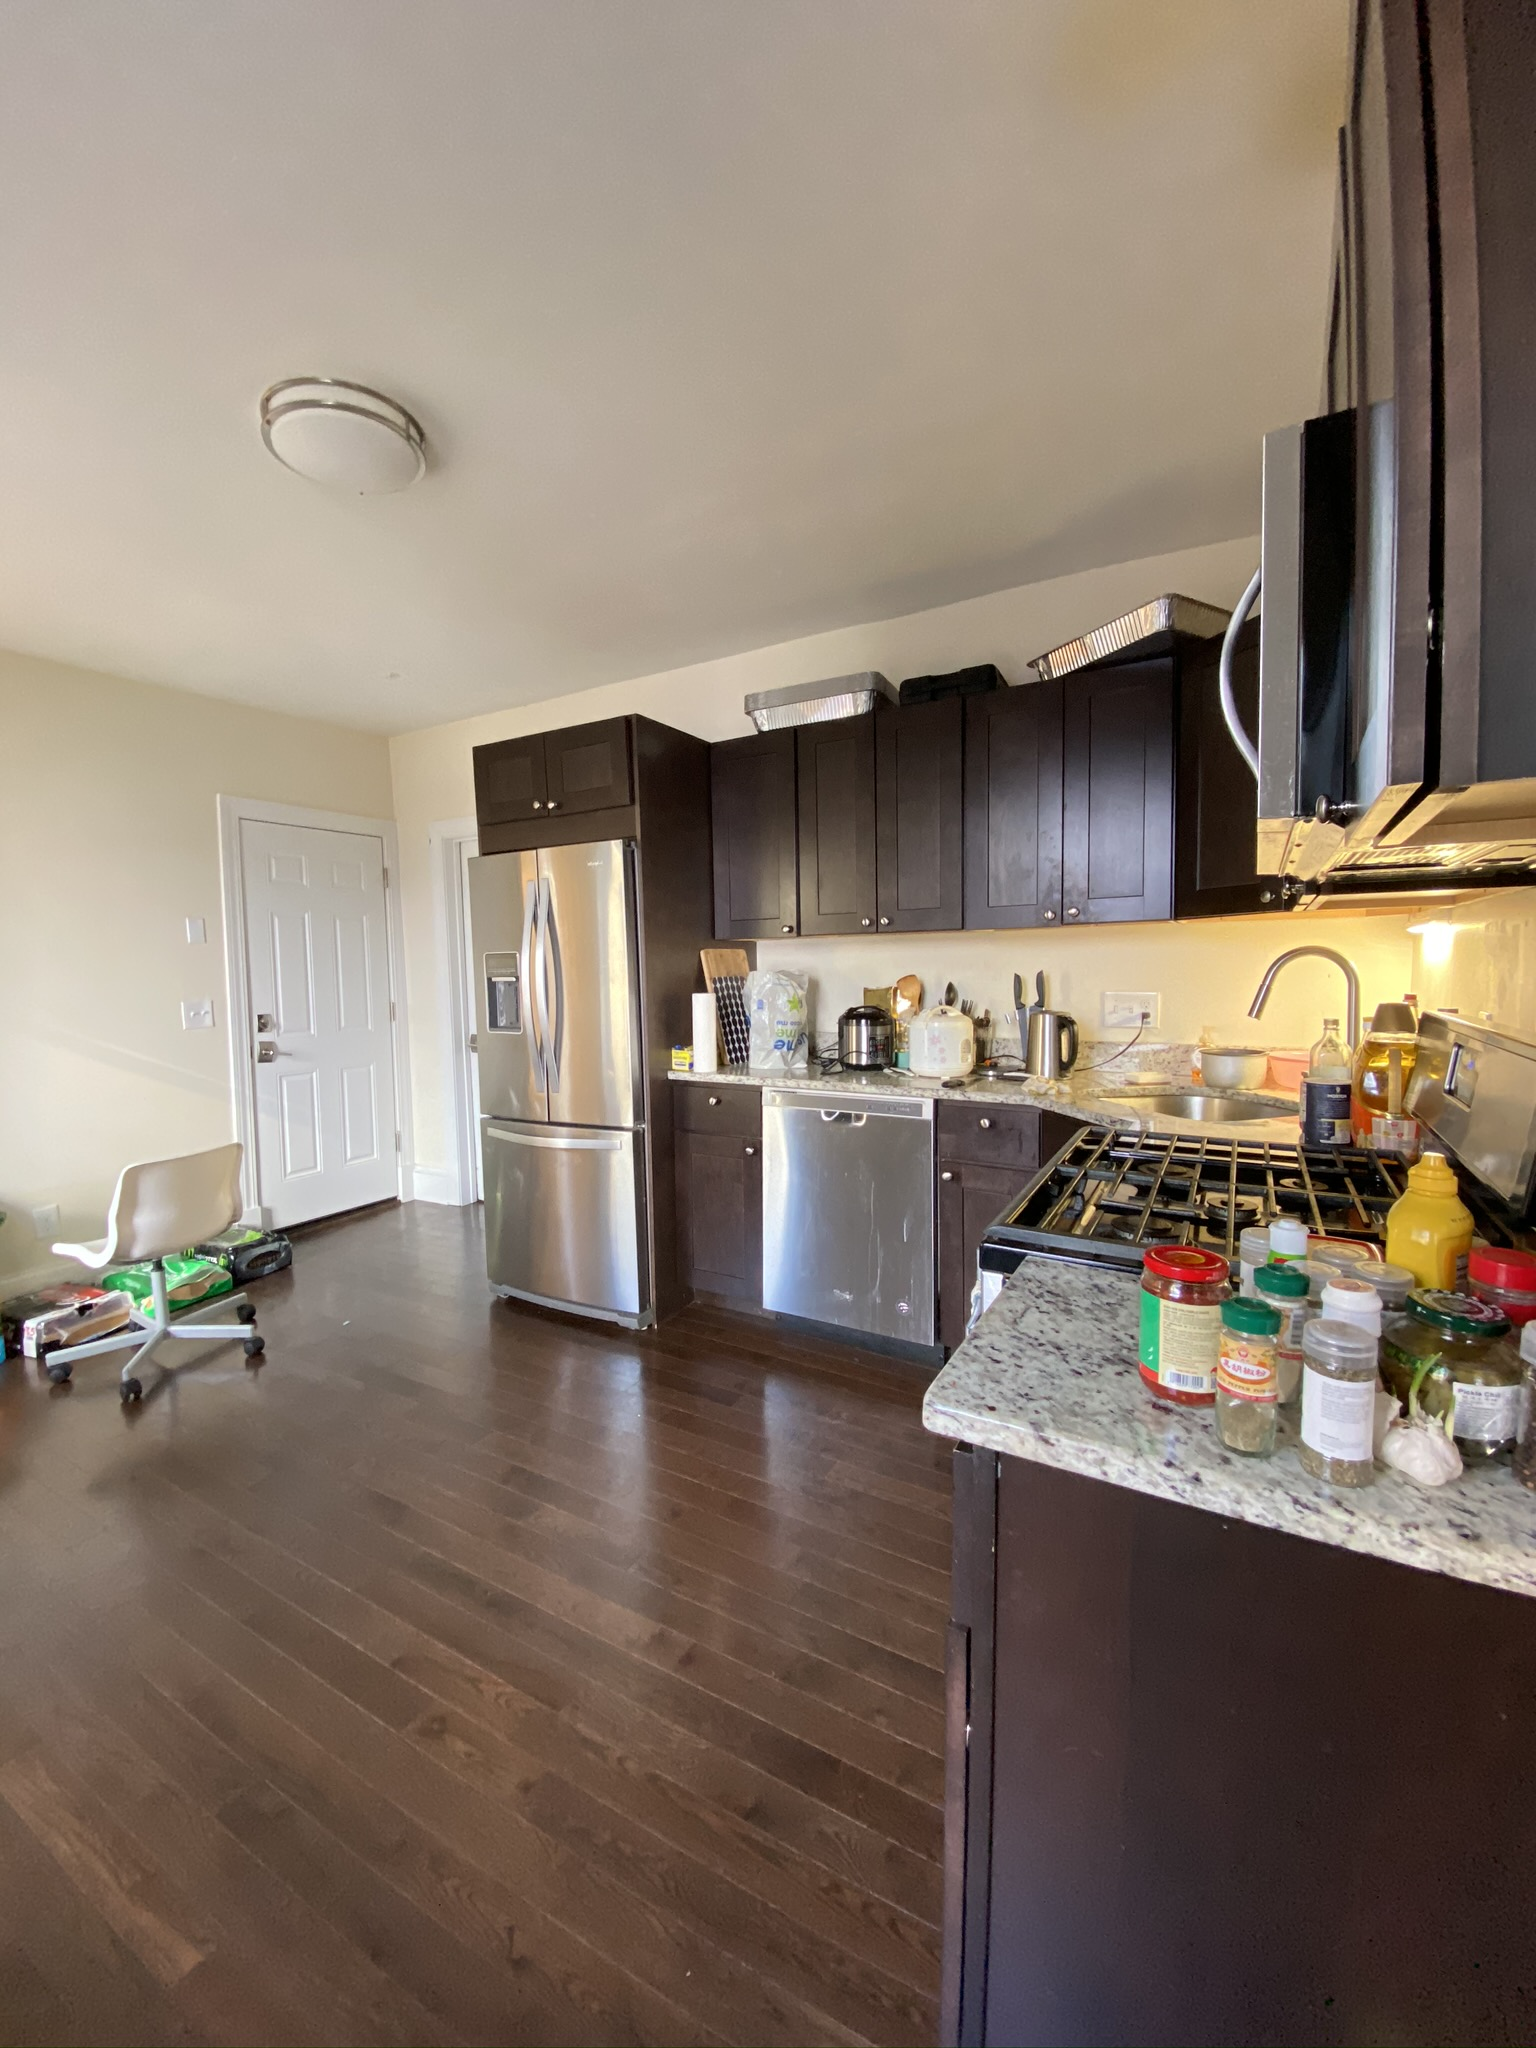 3 Beds, 1.5 Baths apartment in Boston, Jamaica Plain for $3,000